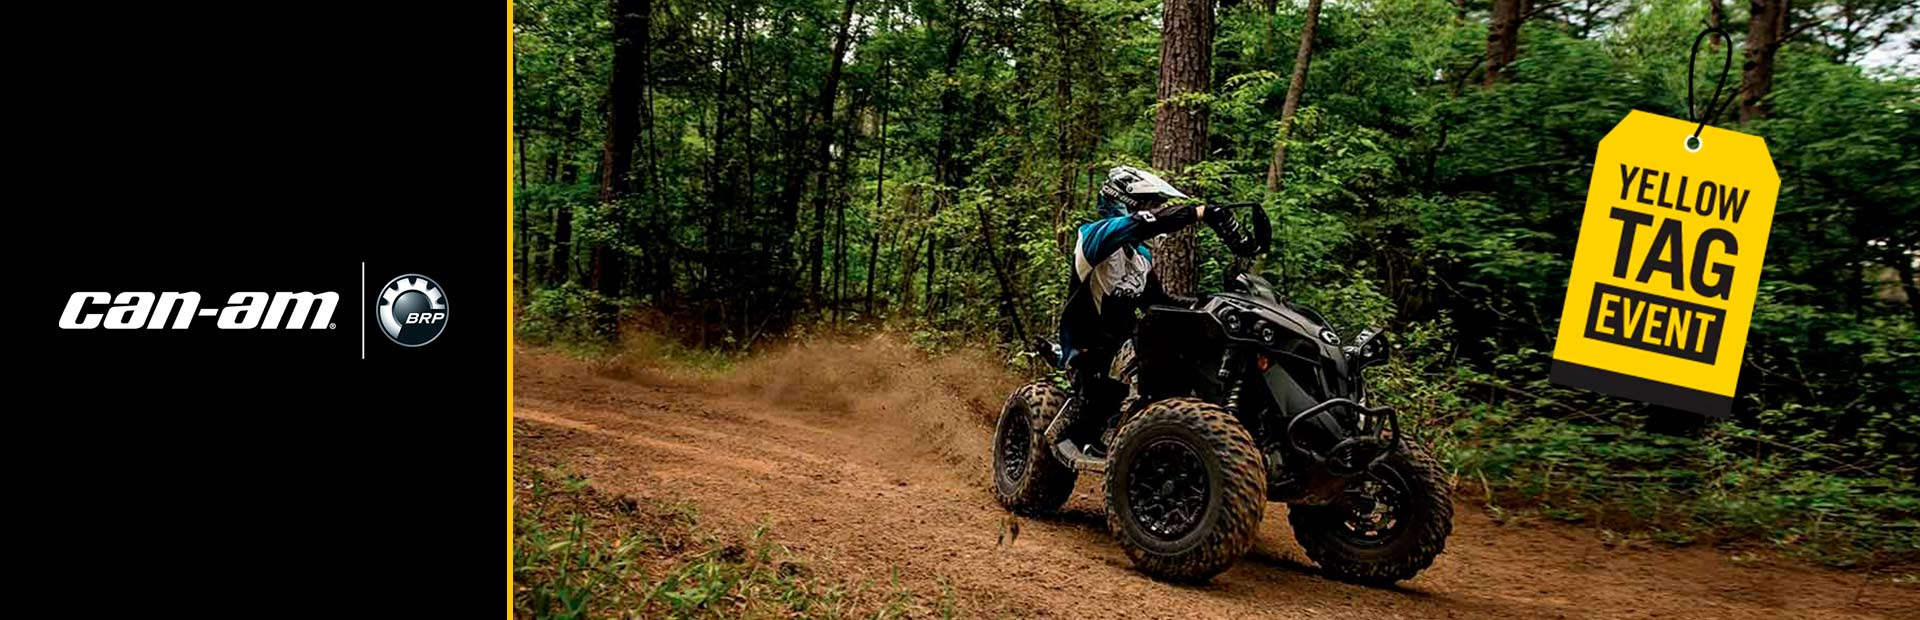 Home Lake Norman Powersports Cornelius, NC (704) 896-6022